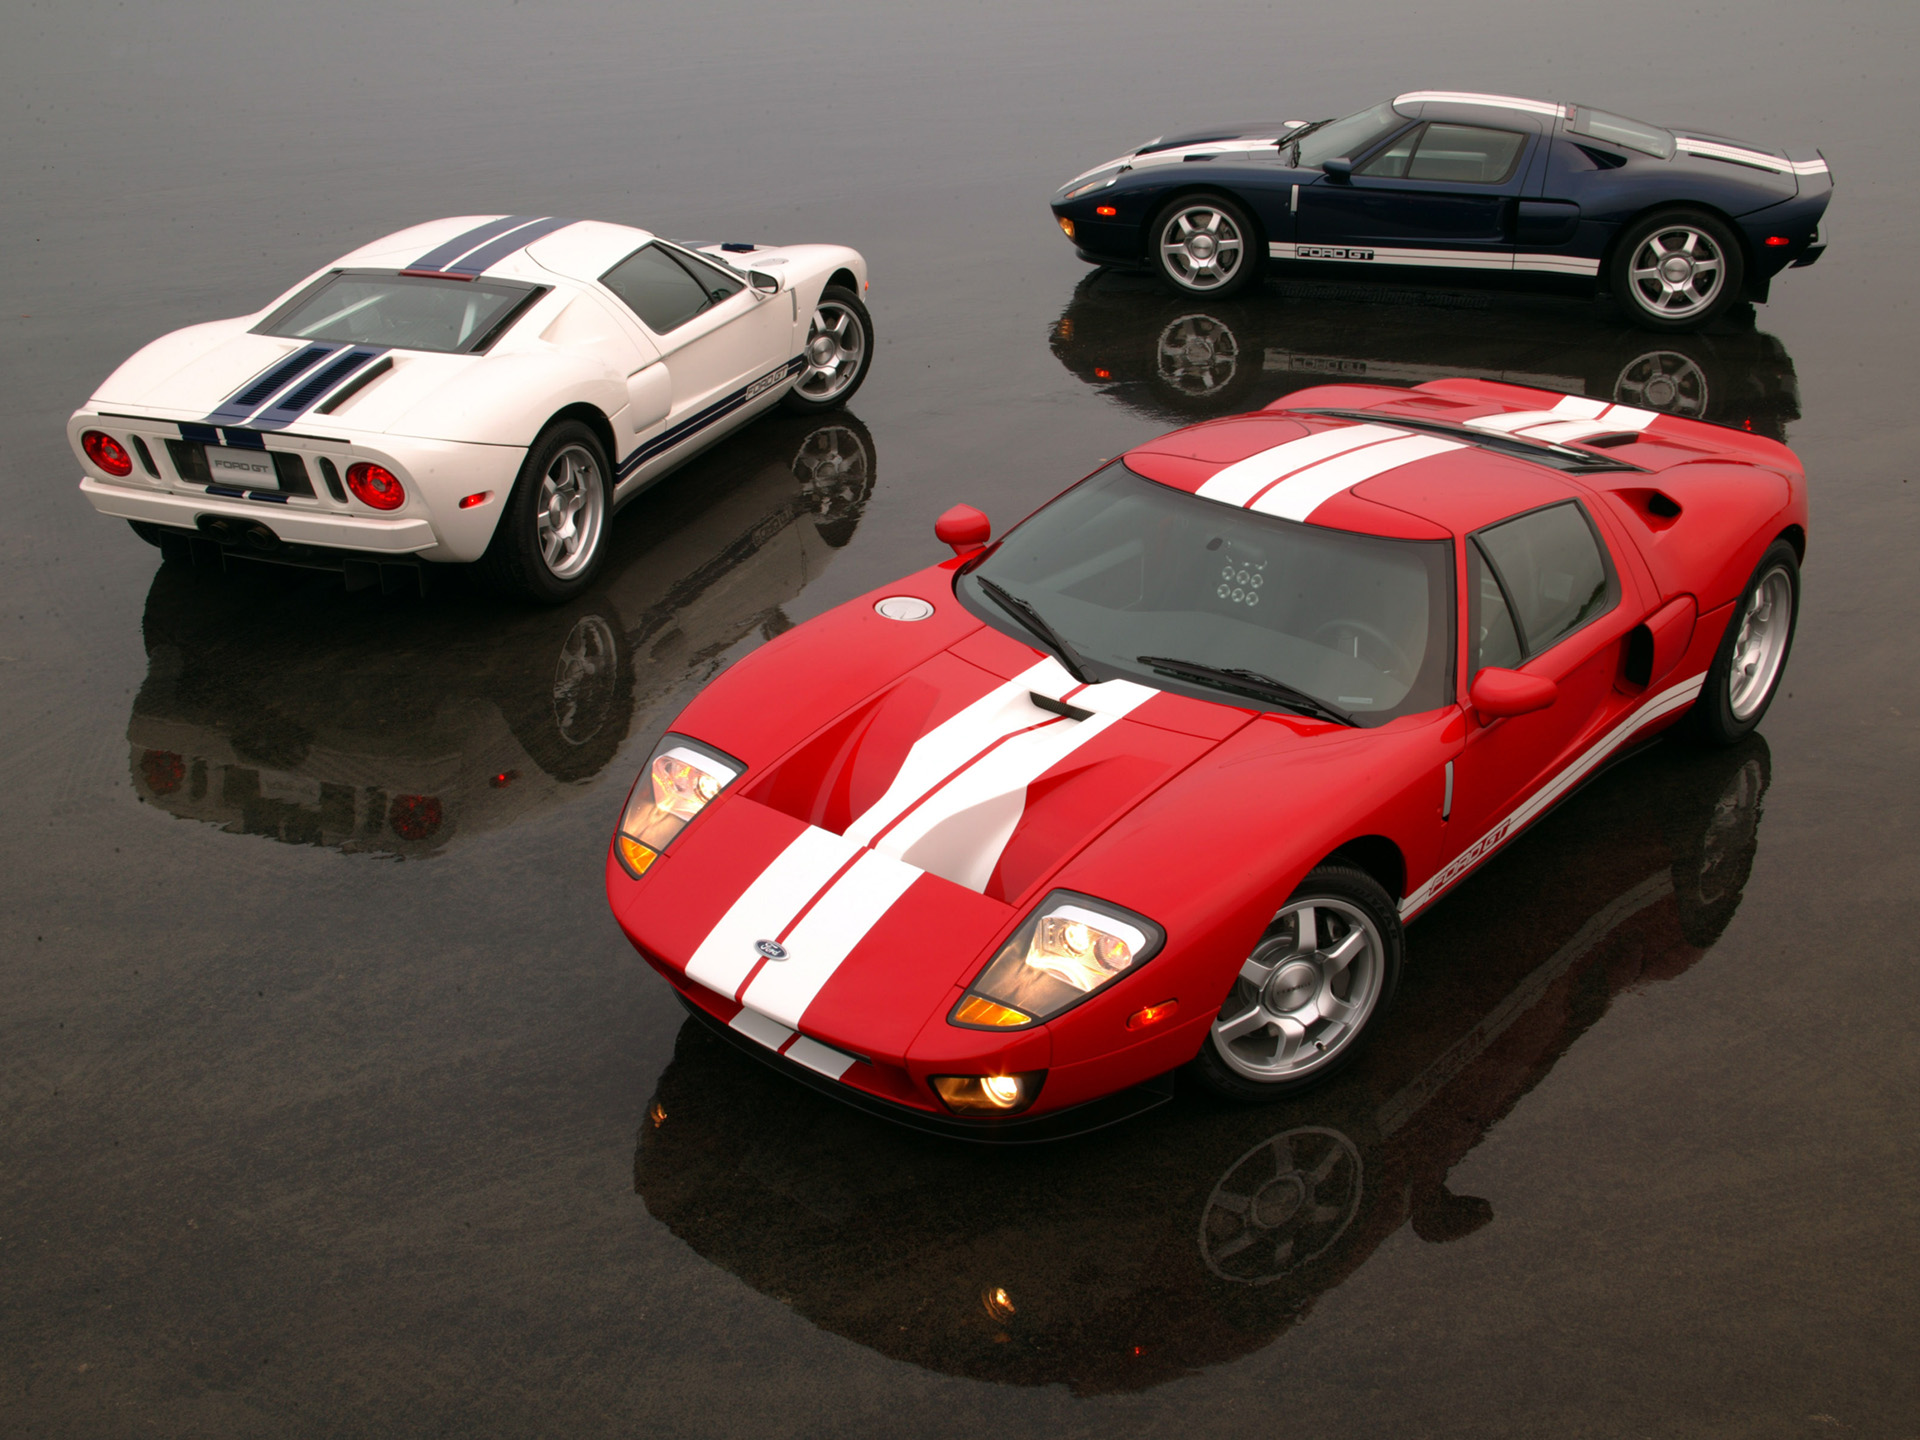 2002 Ford GT Image. Photo 105 of 105